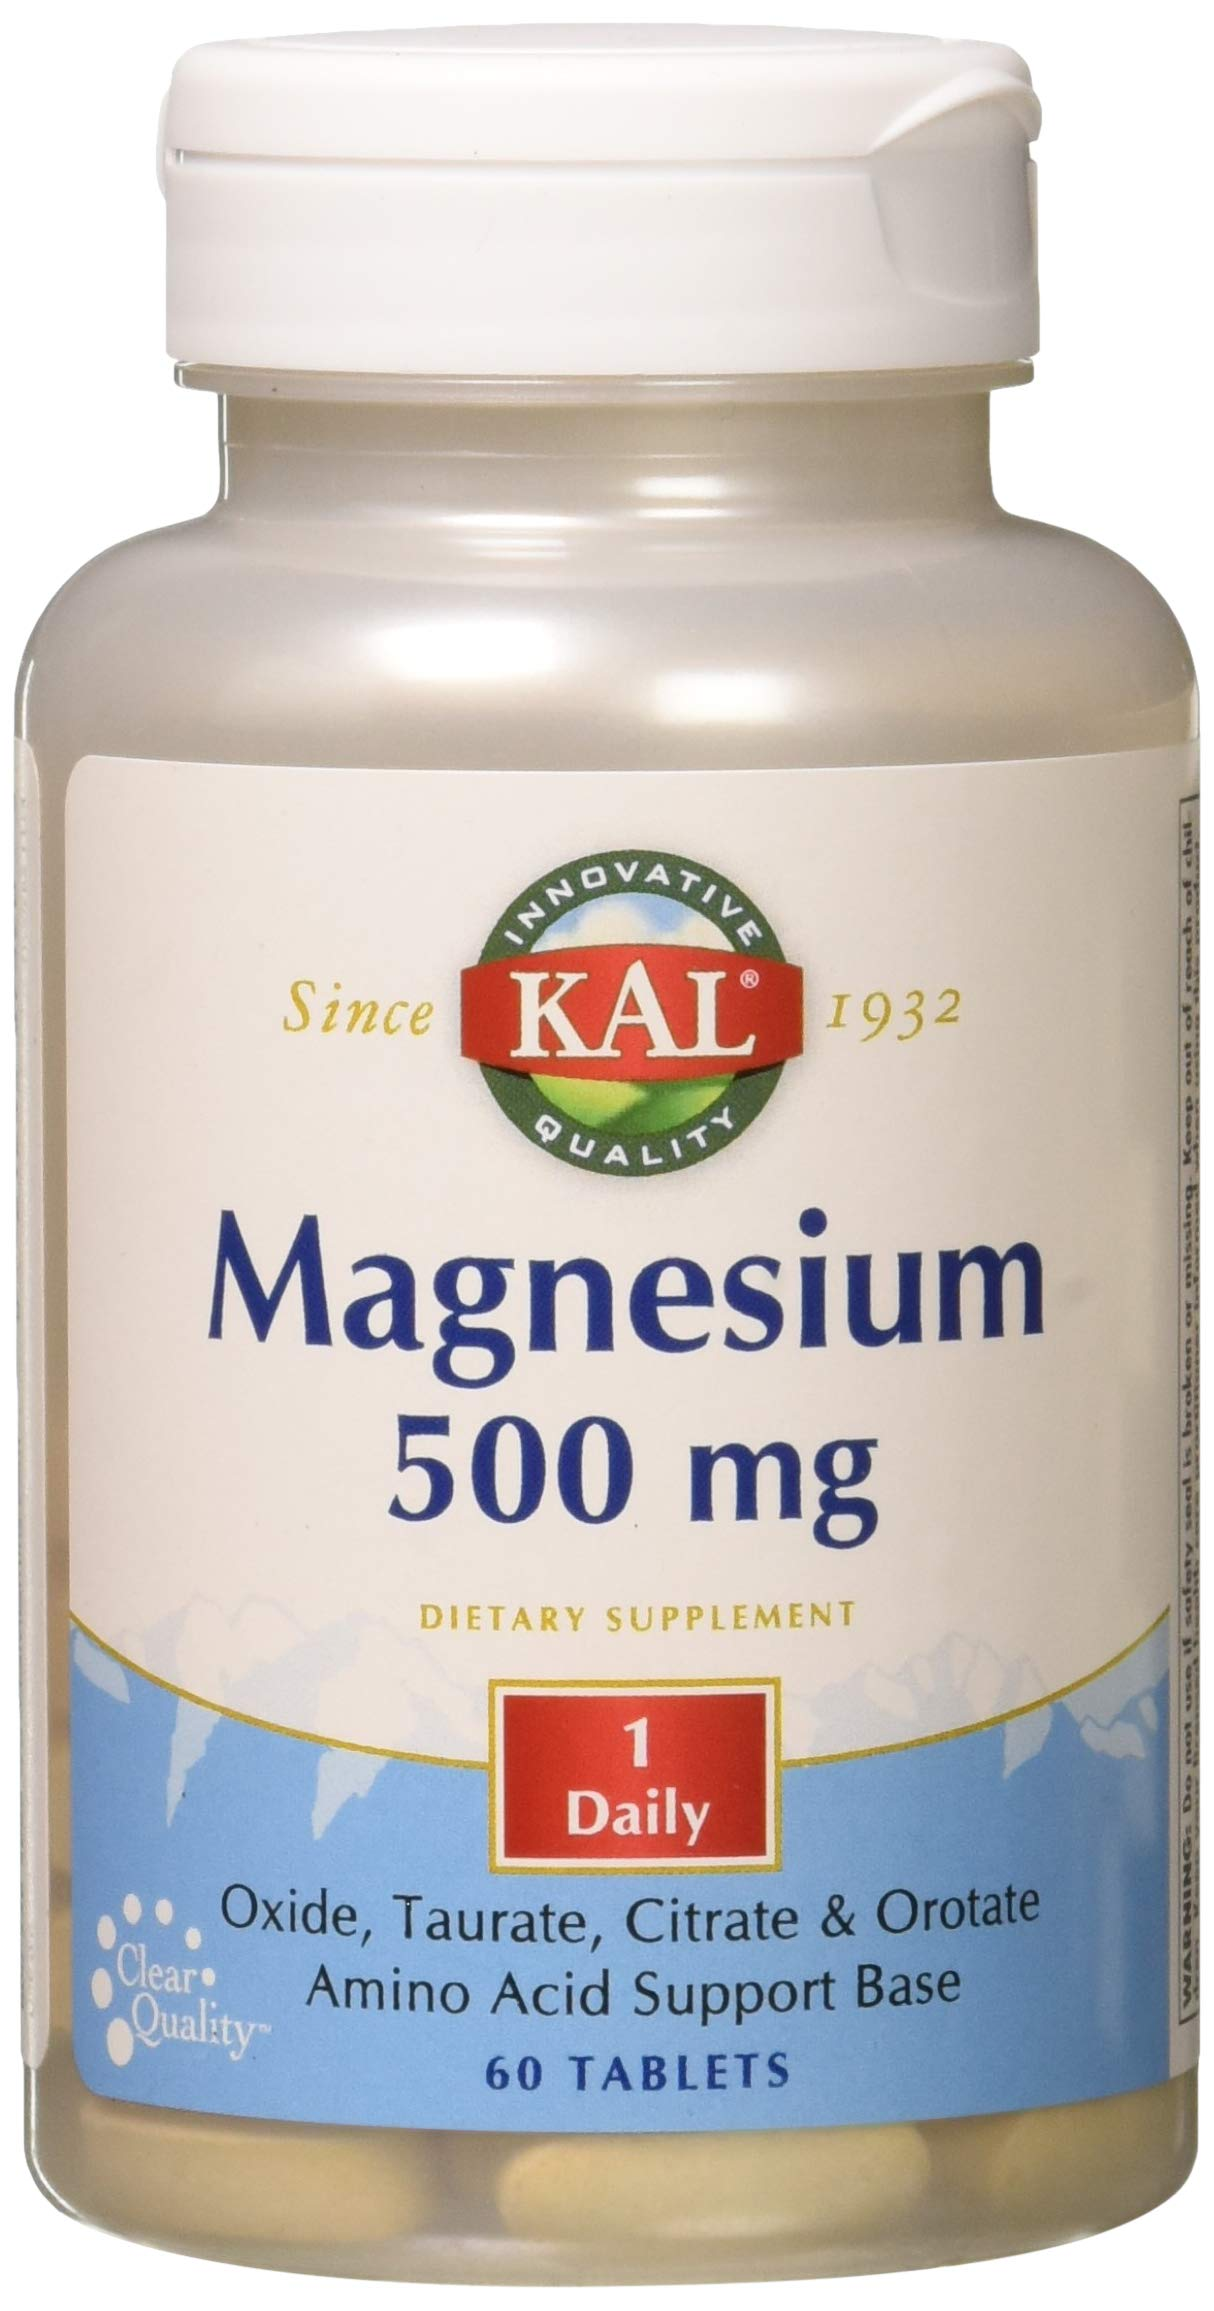 Kal 500 Mg Magnesium Tablets, 60 Count